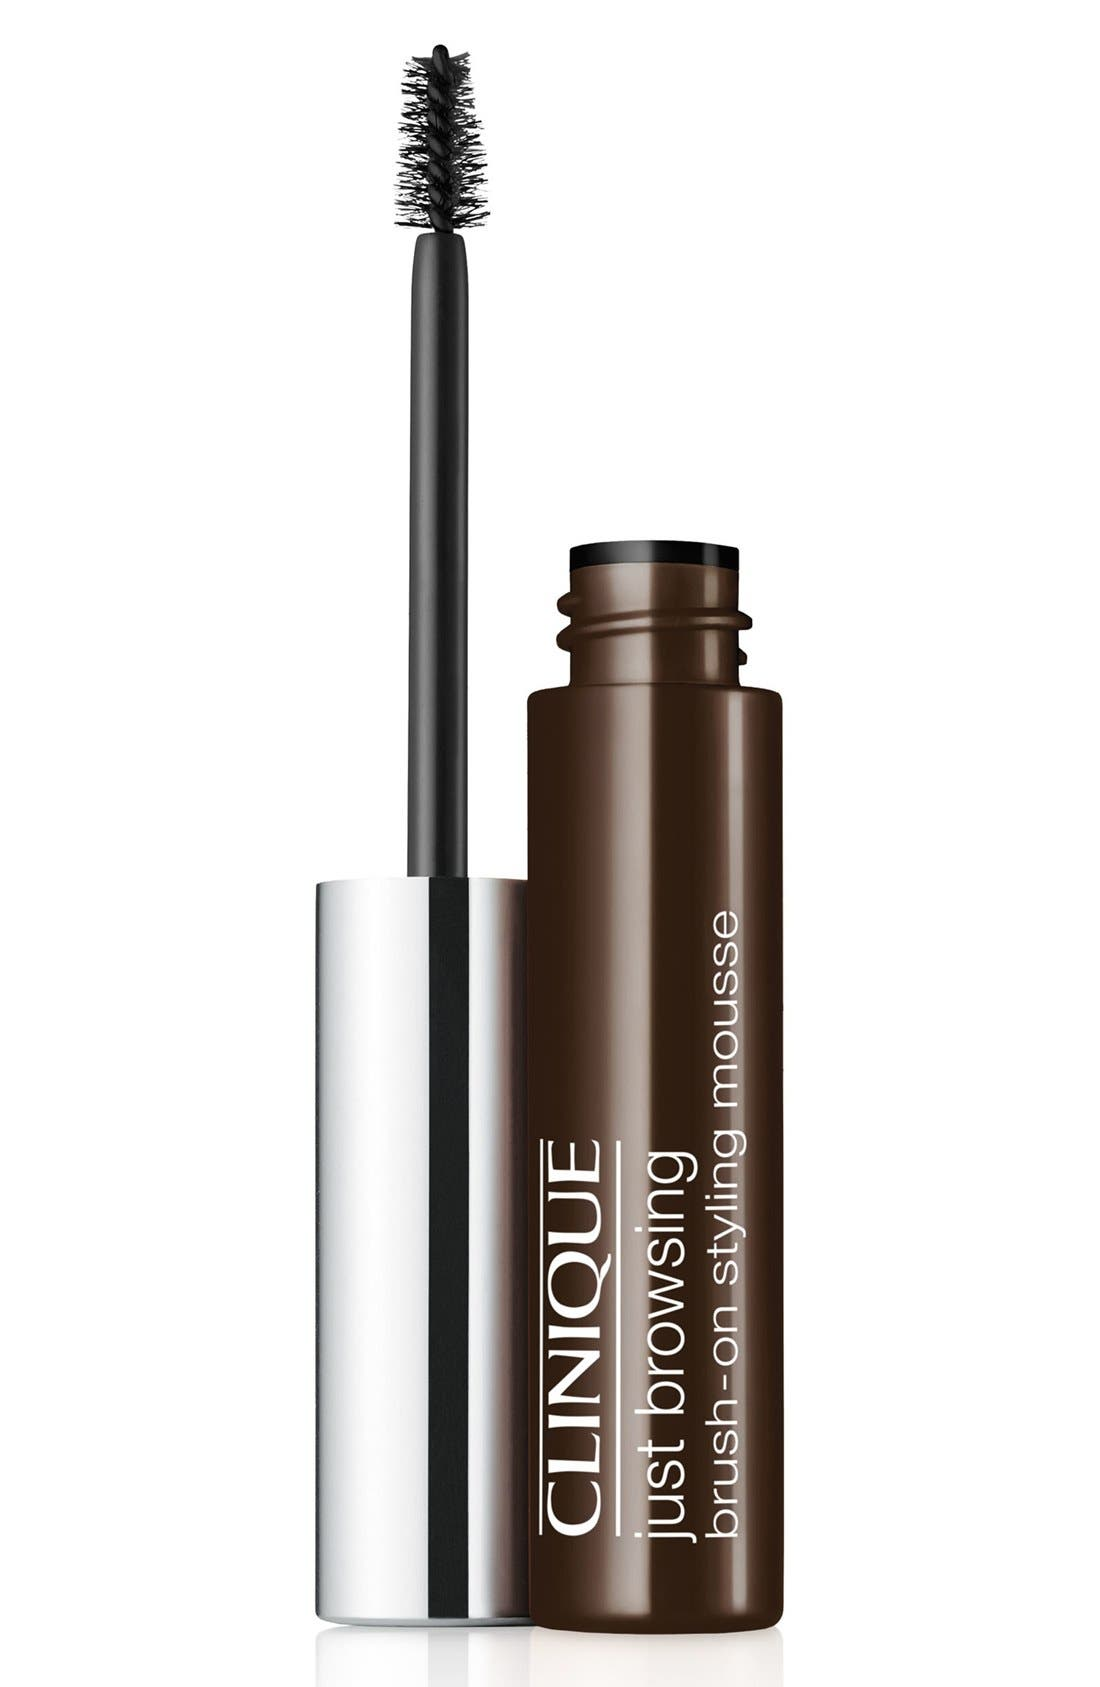 Just Browsing Brush-On Styling Mousse,                             Main thumbnail 1, color,                             001